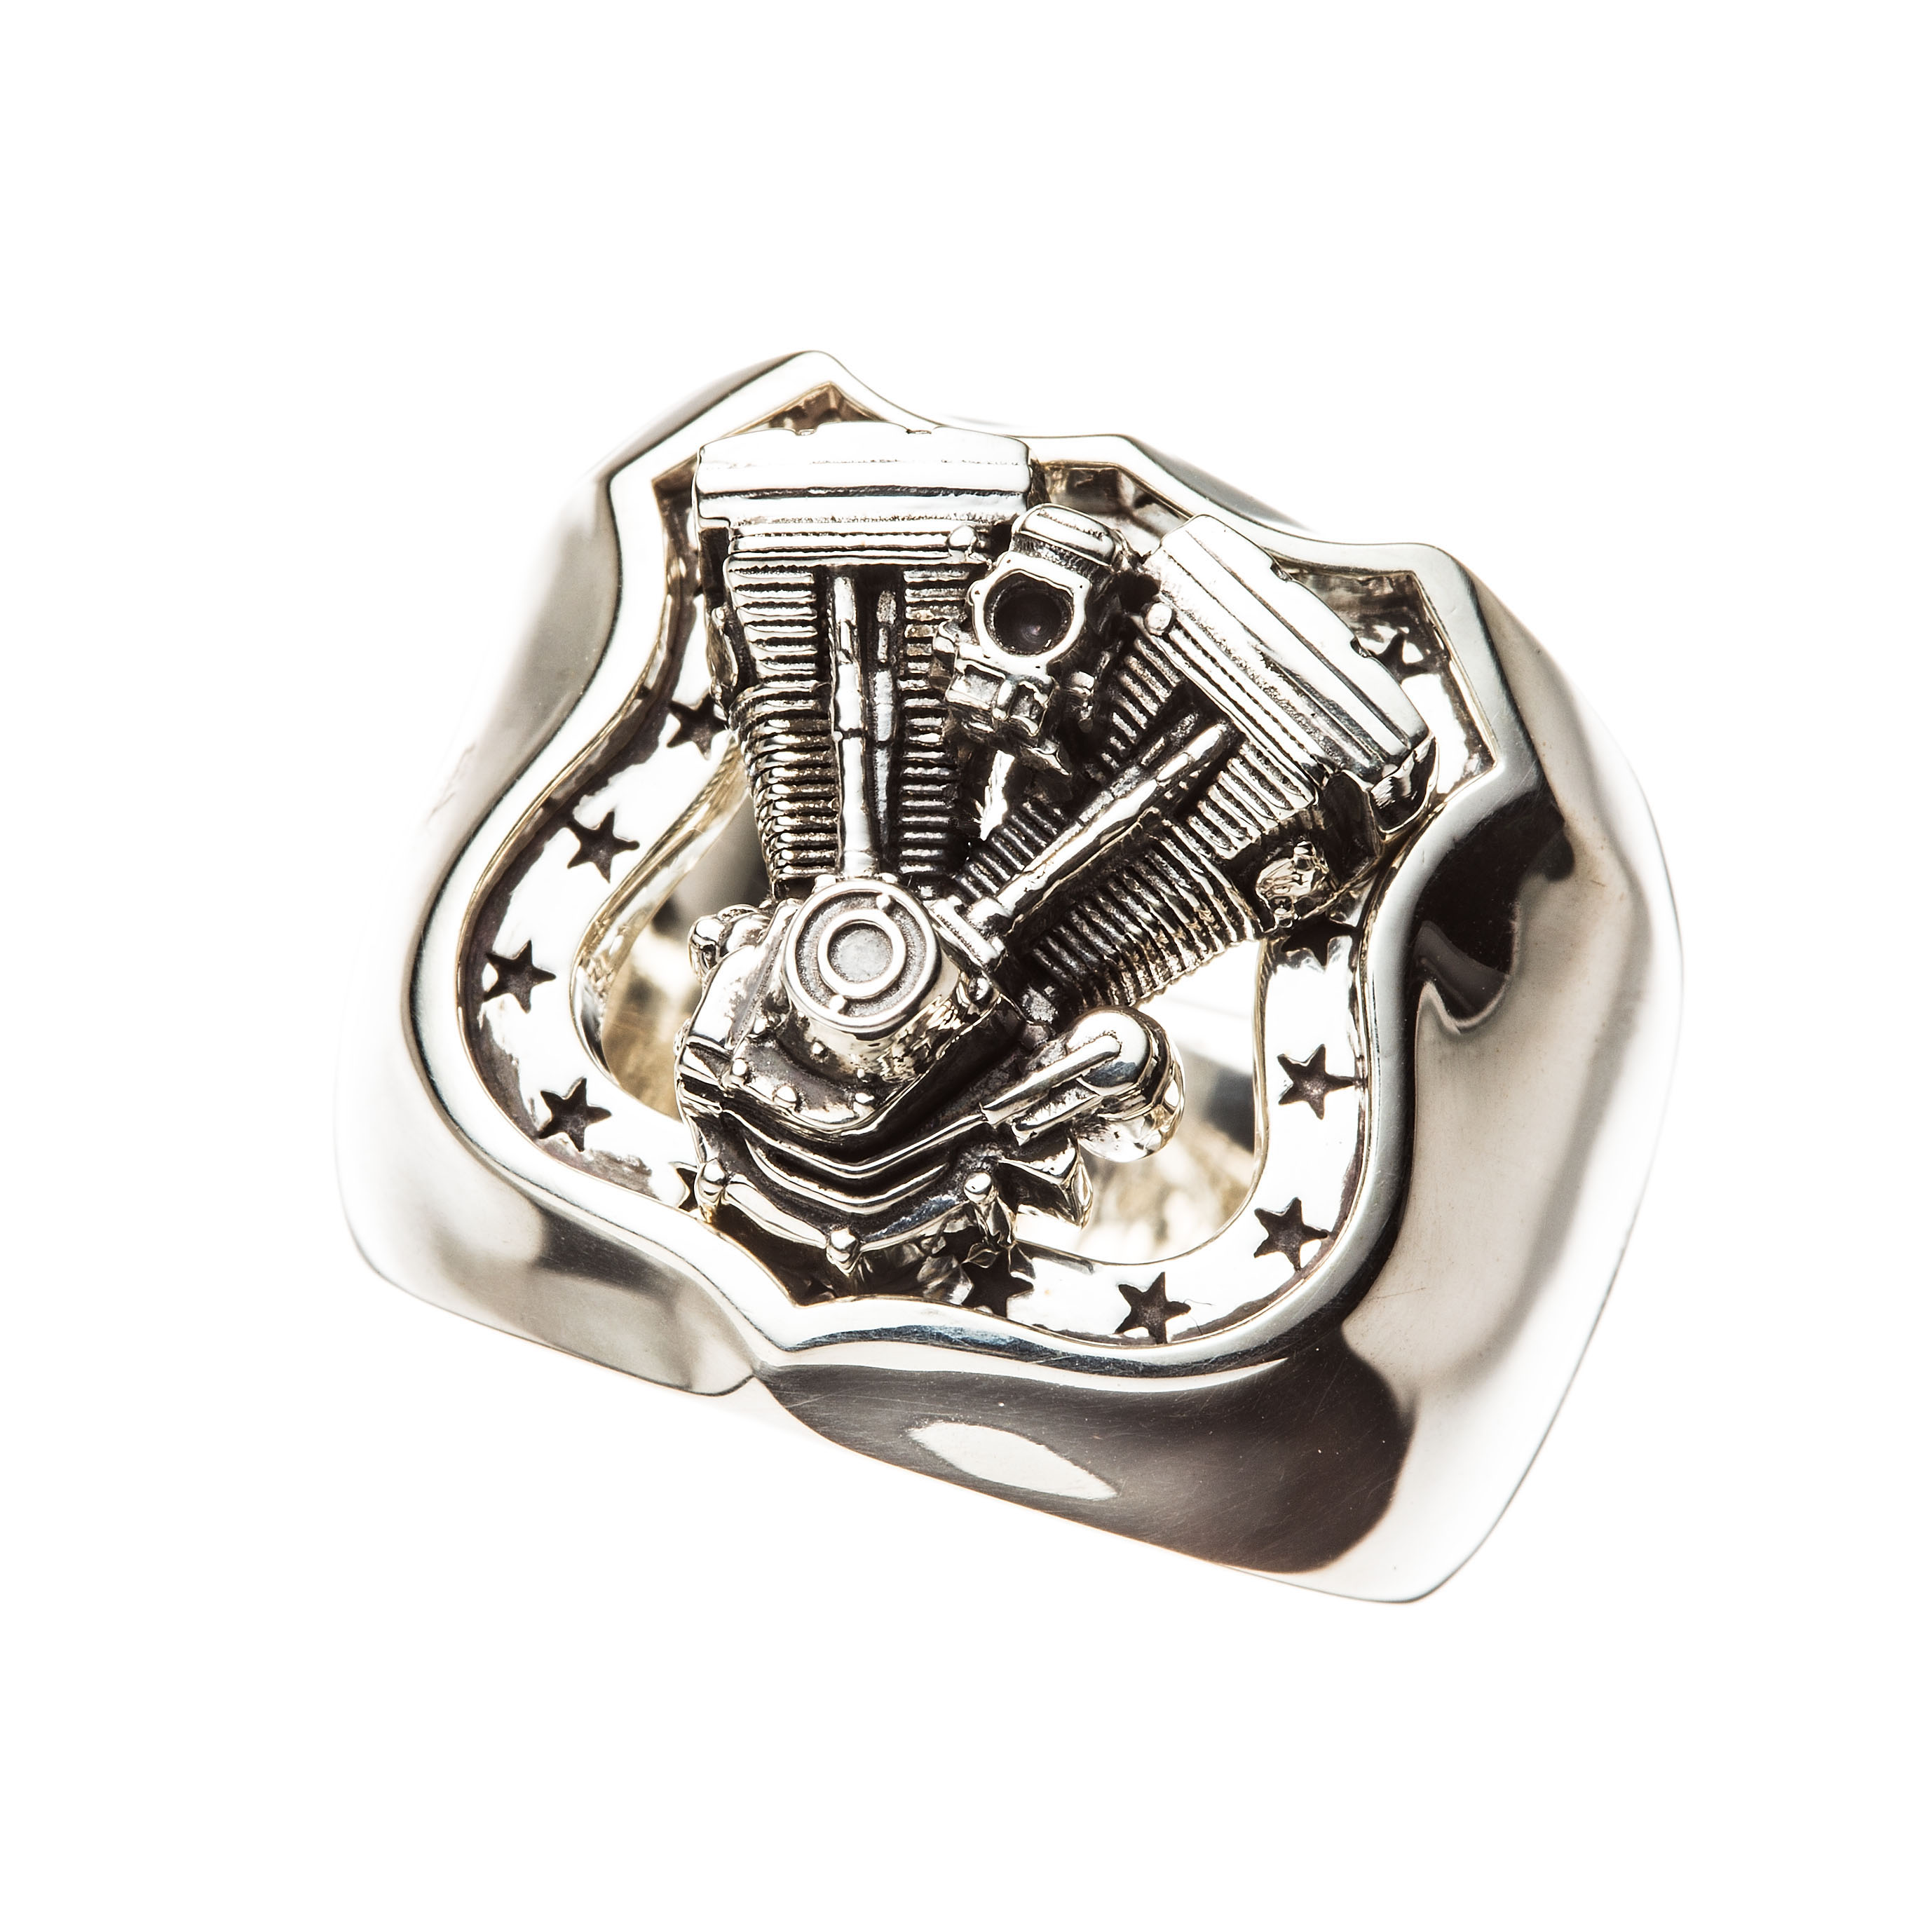 EVOLUTION ENGINE RING